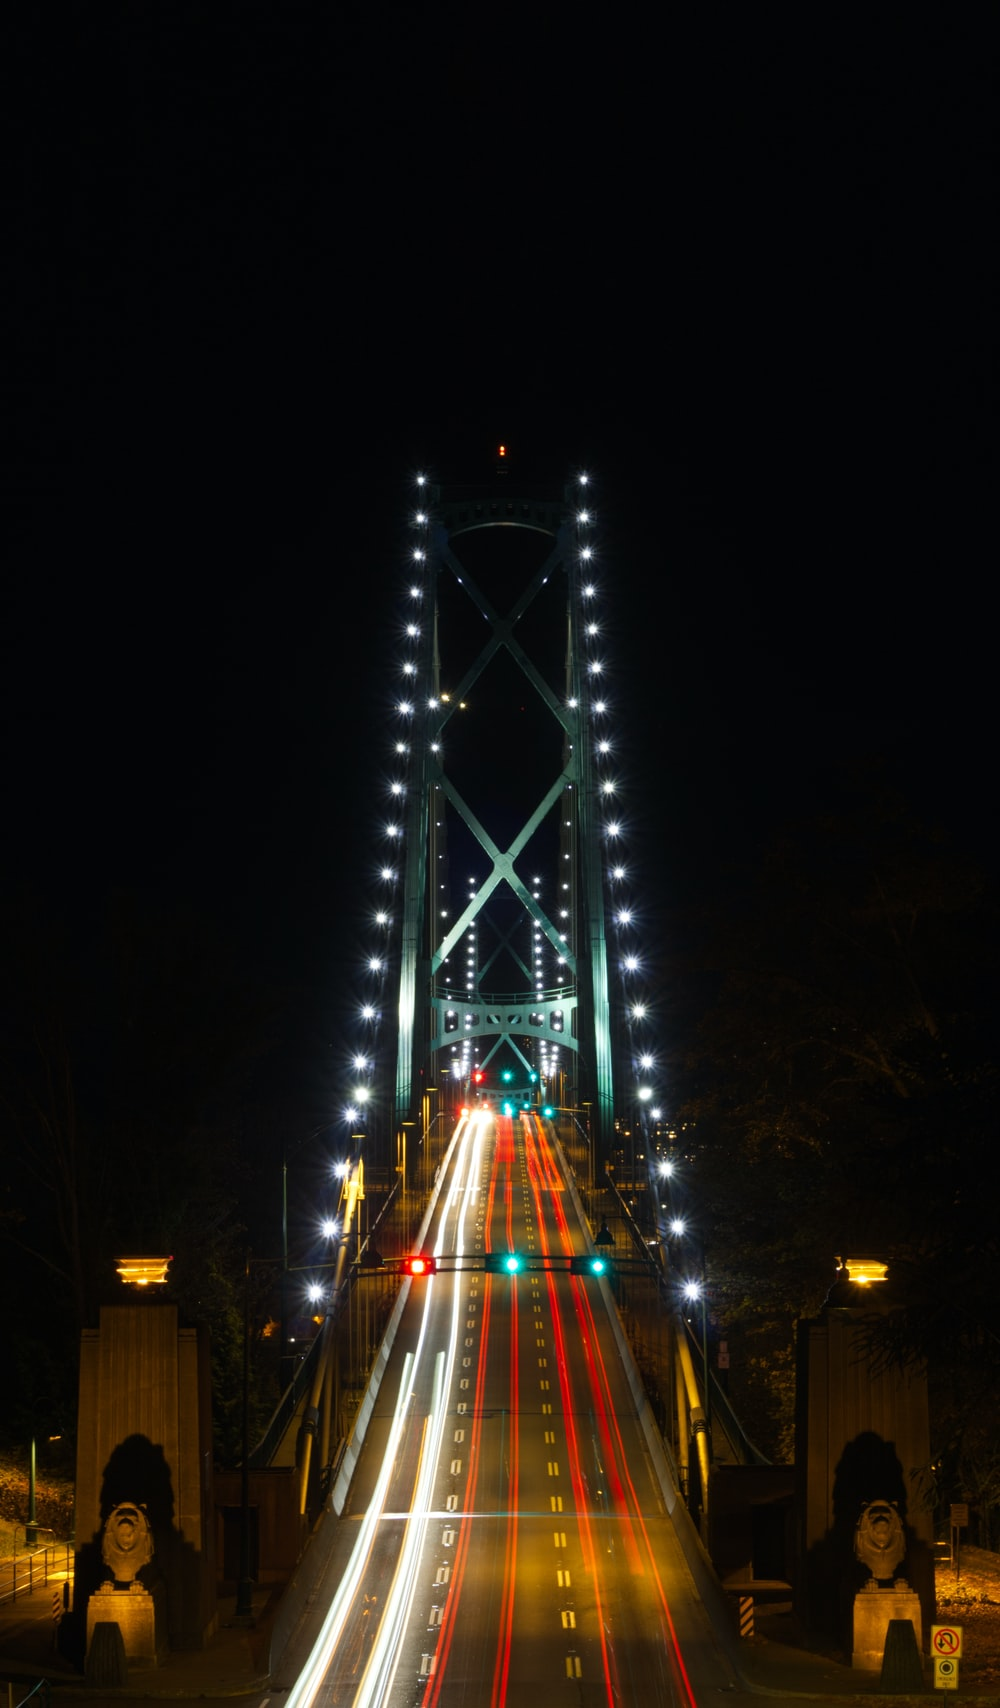 blue lighted bridge during night time